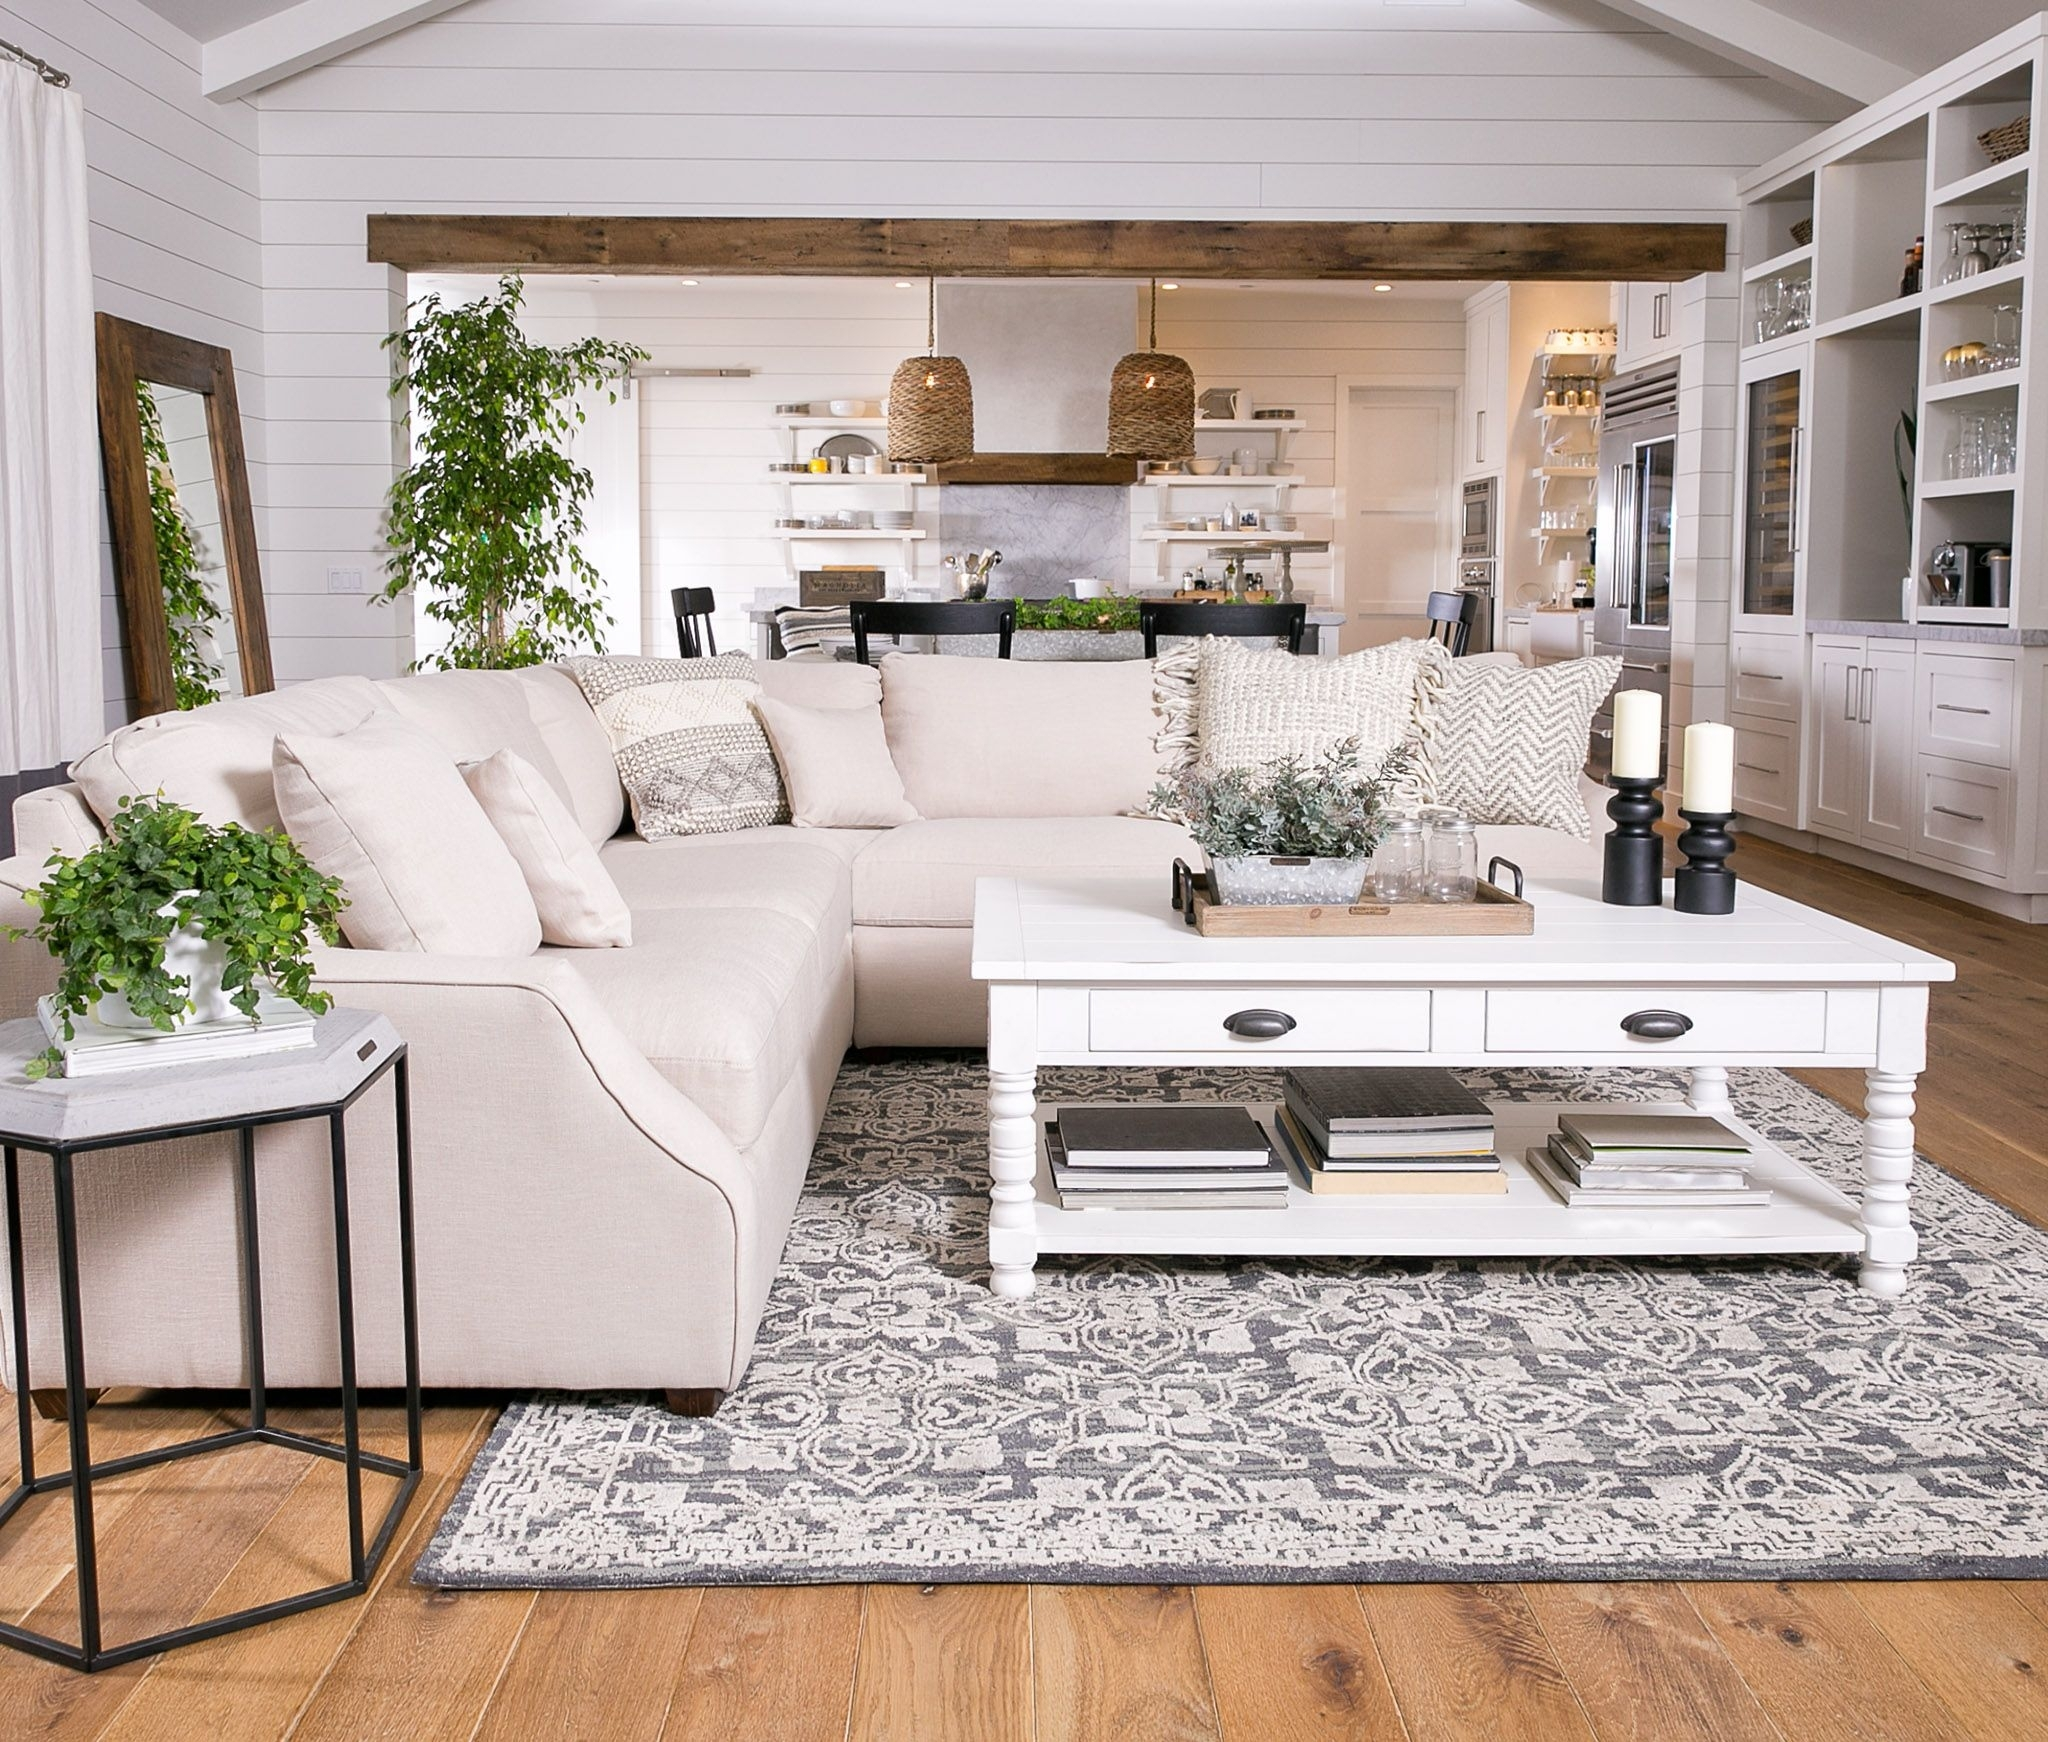 Magnolia Home Homestead 3 Piece Sectionaljoanna Gaines With Regard To Magnolia Home Homestead 3 Piece Sectionals By Joanna Gaines (Image 16 of 25)